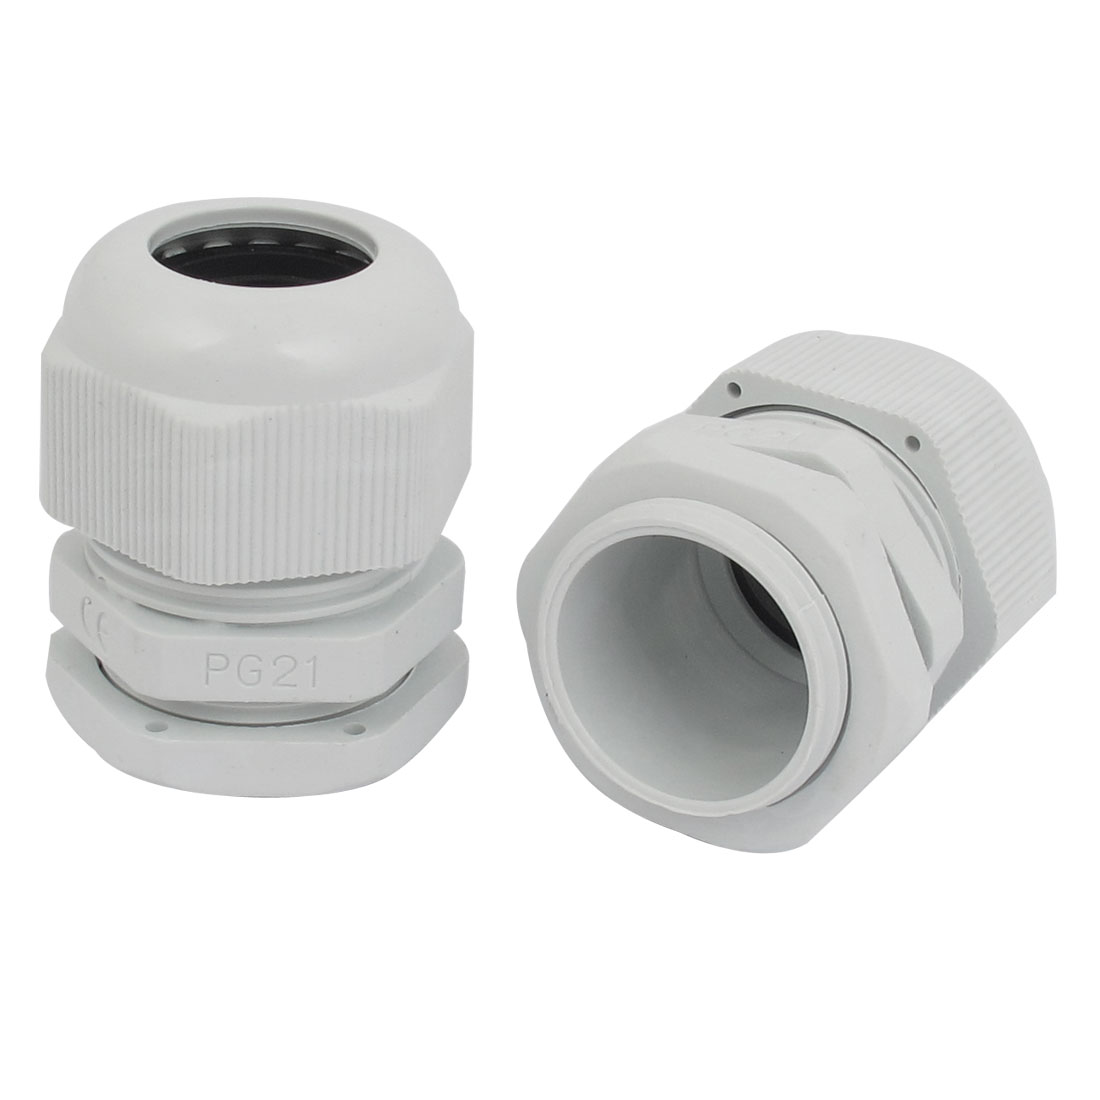 2 Pcs PG21 Compression Waterproof Stuffing 16-21mm Cable Glands White